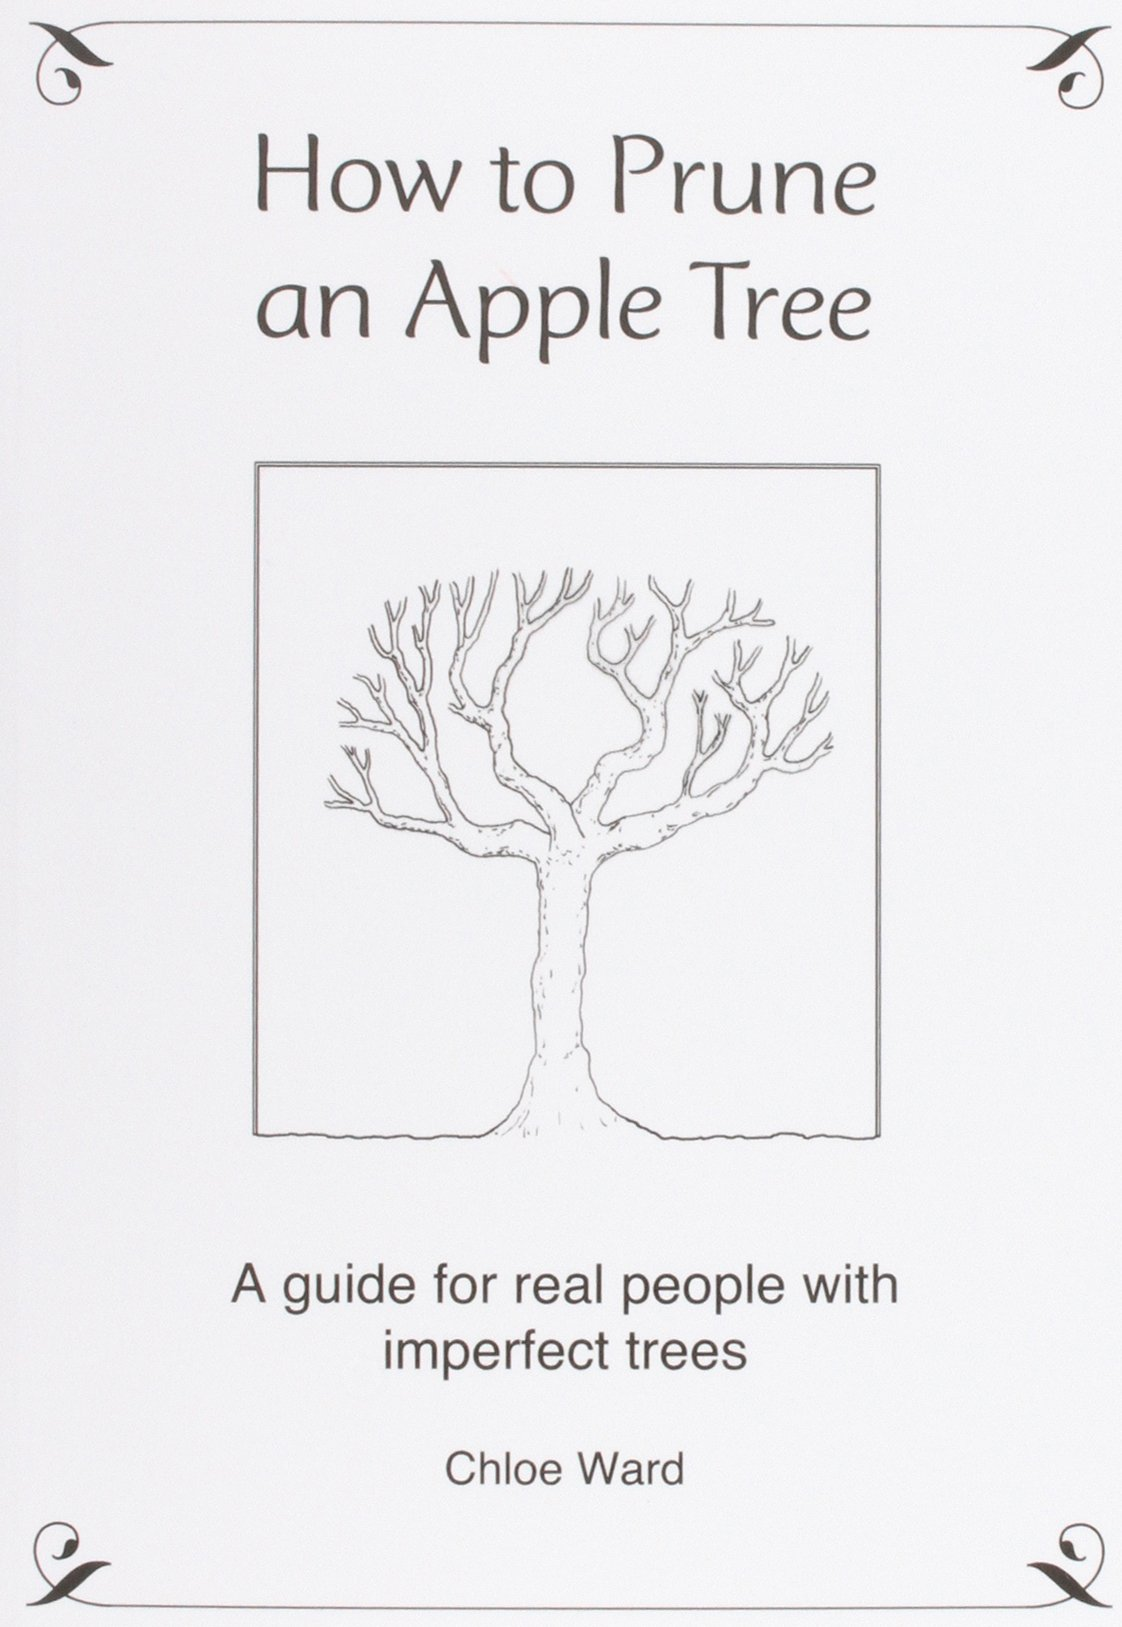 Pleasant How To Prune An Apple Tree A Guide For Real People With Imperfect  With Fair How To Prune An Apple Tree A Guide For Real People With Imperfect Trees  Amazoncouk Chloe Ward  Books With Beautiful Childrens Gardens Also Victoria Embankment Gardens In Addition Mushrooms In The Garden And Luxury Garden Swing Seats As Well As Argos Garden Lights Additionally Radisson Blu Resort And Spa Dubrovnik Sun Gardens From Amazoncouk With   Fair How To Prune An Apple Tree A Guide For Real People With Imperfect  With Beautiful How To Prune An Apple Tree A Guide For Real People With Imperfect Trees  Amazoncouk Chloe Ward  Books And Pleasant Childrens Gardens Also Victoria Embankment Gardens In Addition Mushrooms In The Garden From Amazoncouk